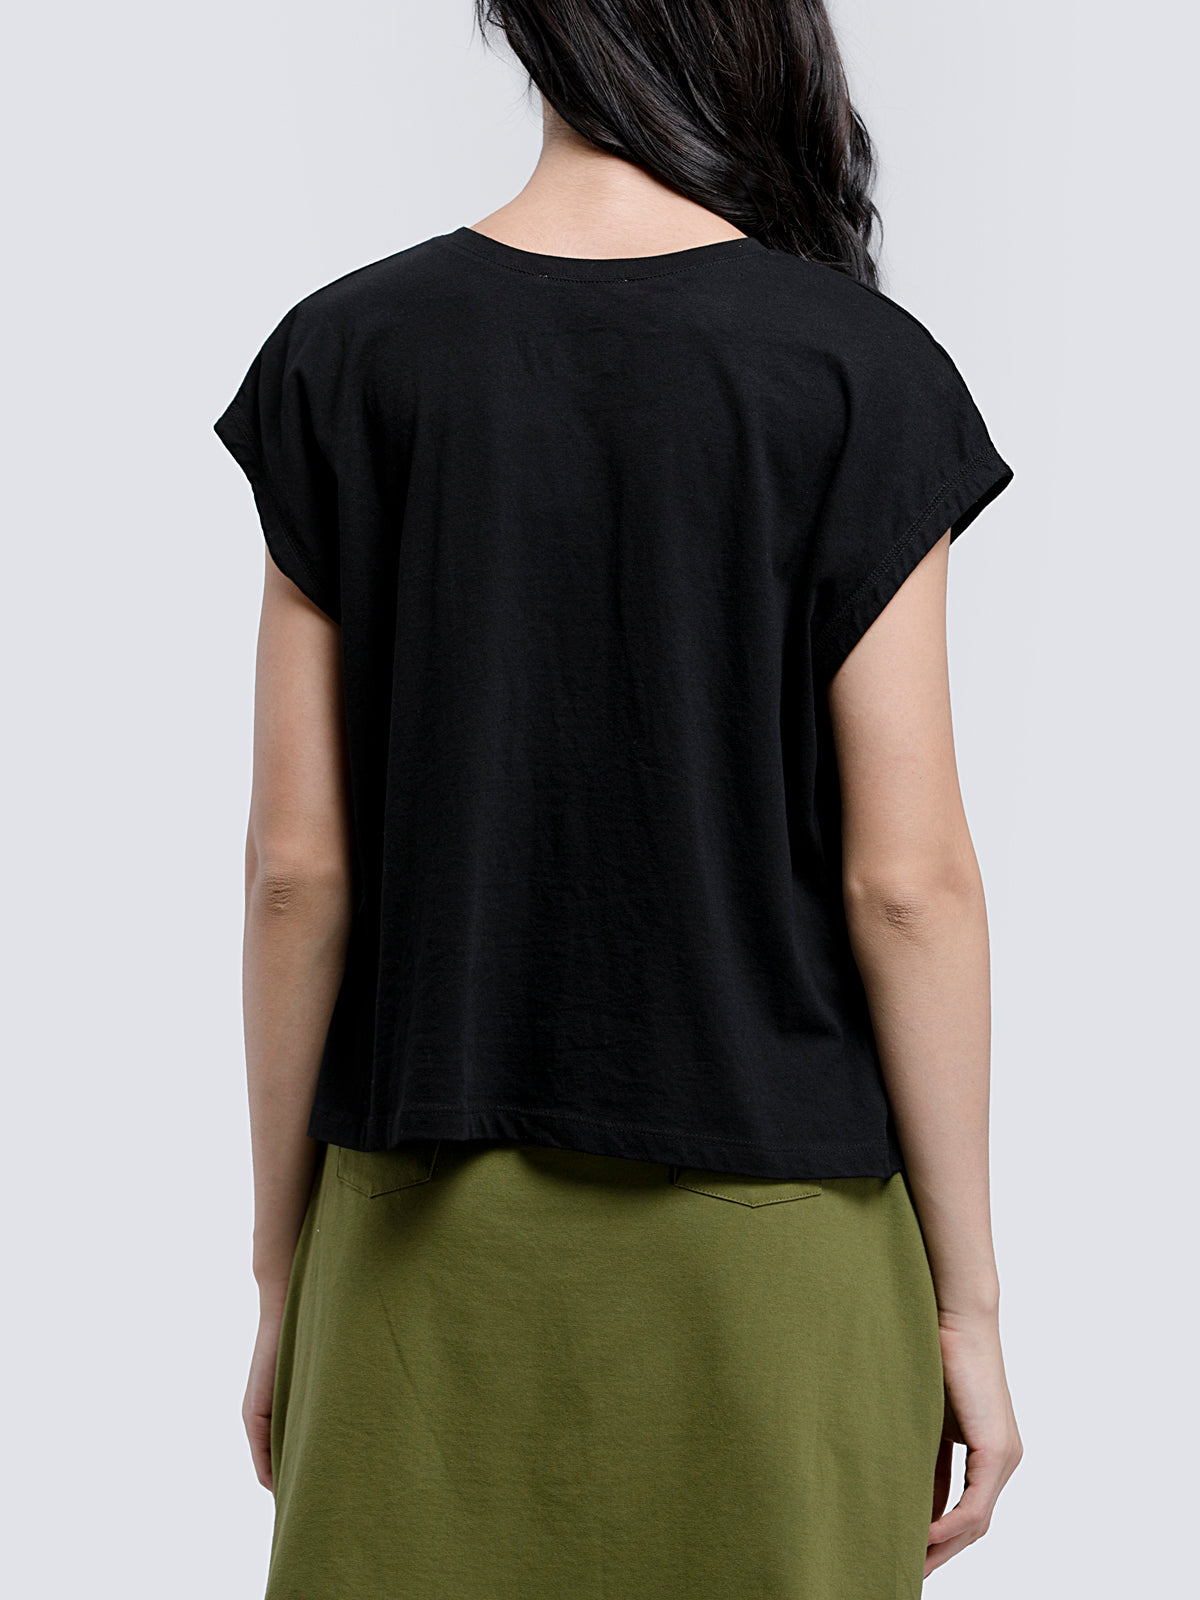 Cotton Lycra Drop Shoulder Knitted T Shirt - Black